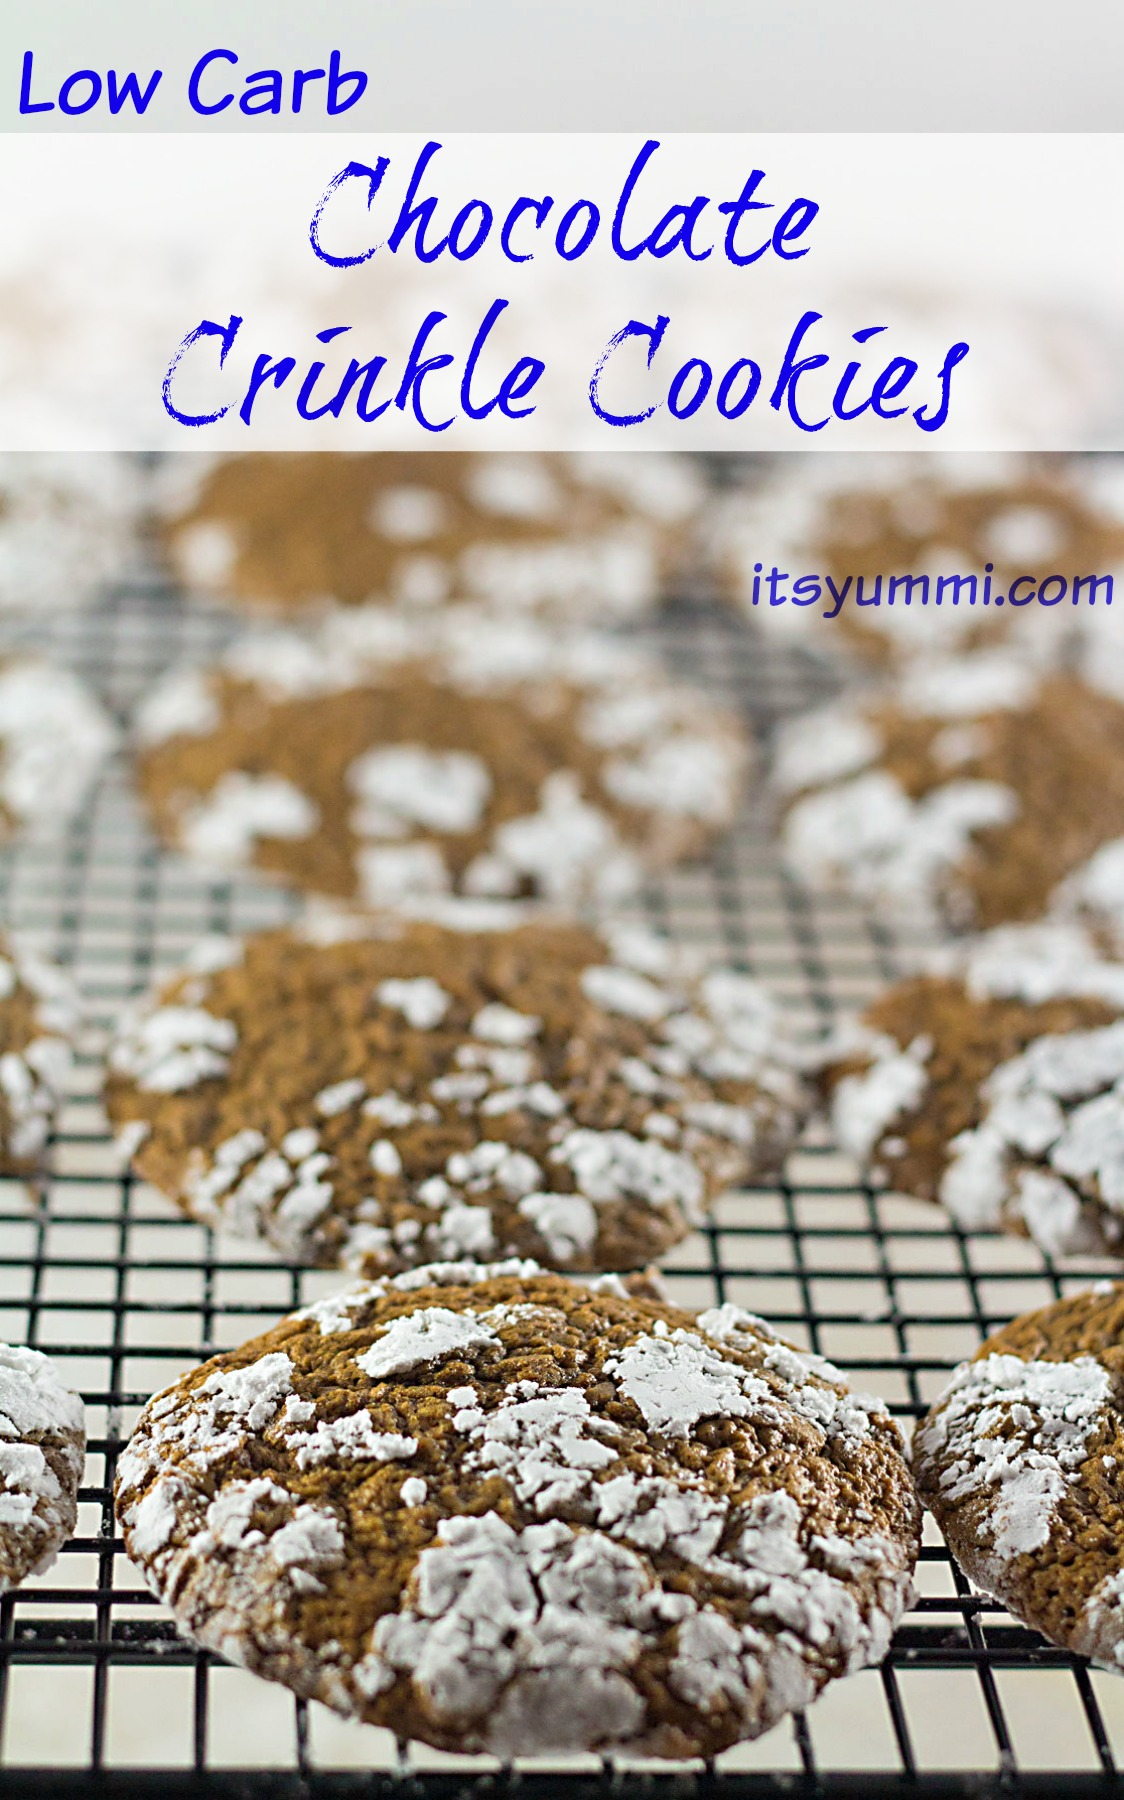 Holiday Cookie Recipes: Low Carb Chocolate Crinkle Cookies